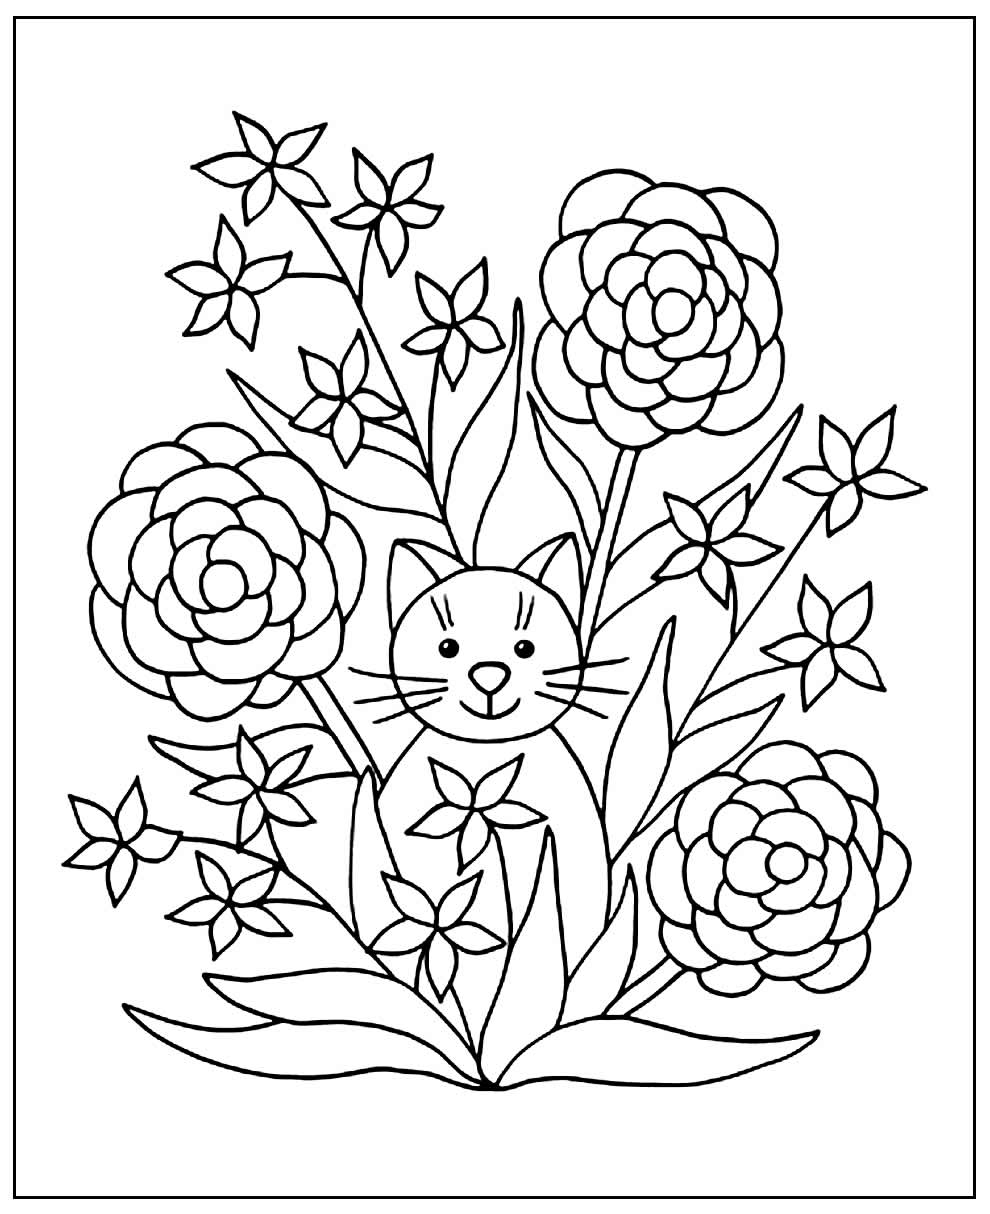 Coloring Images of Flowers